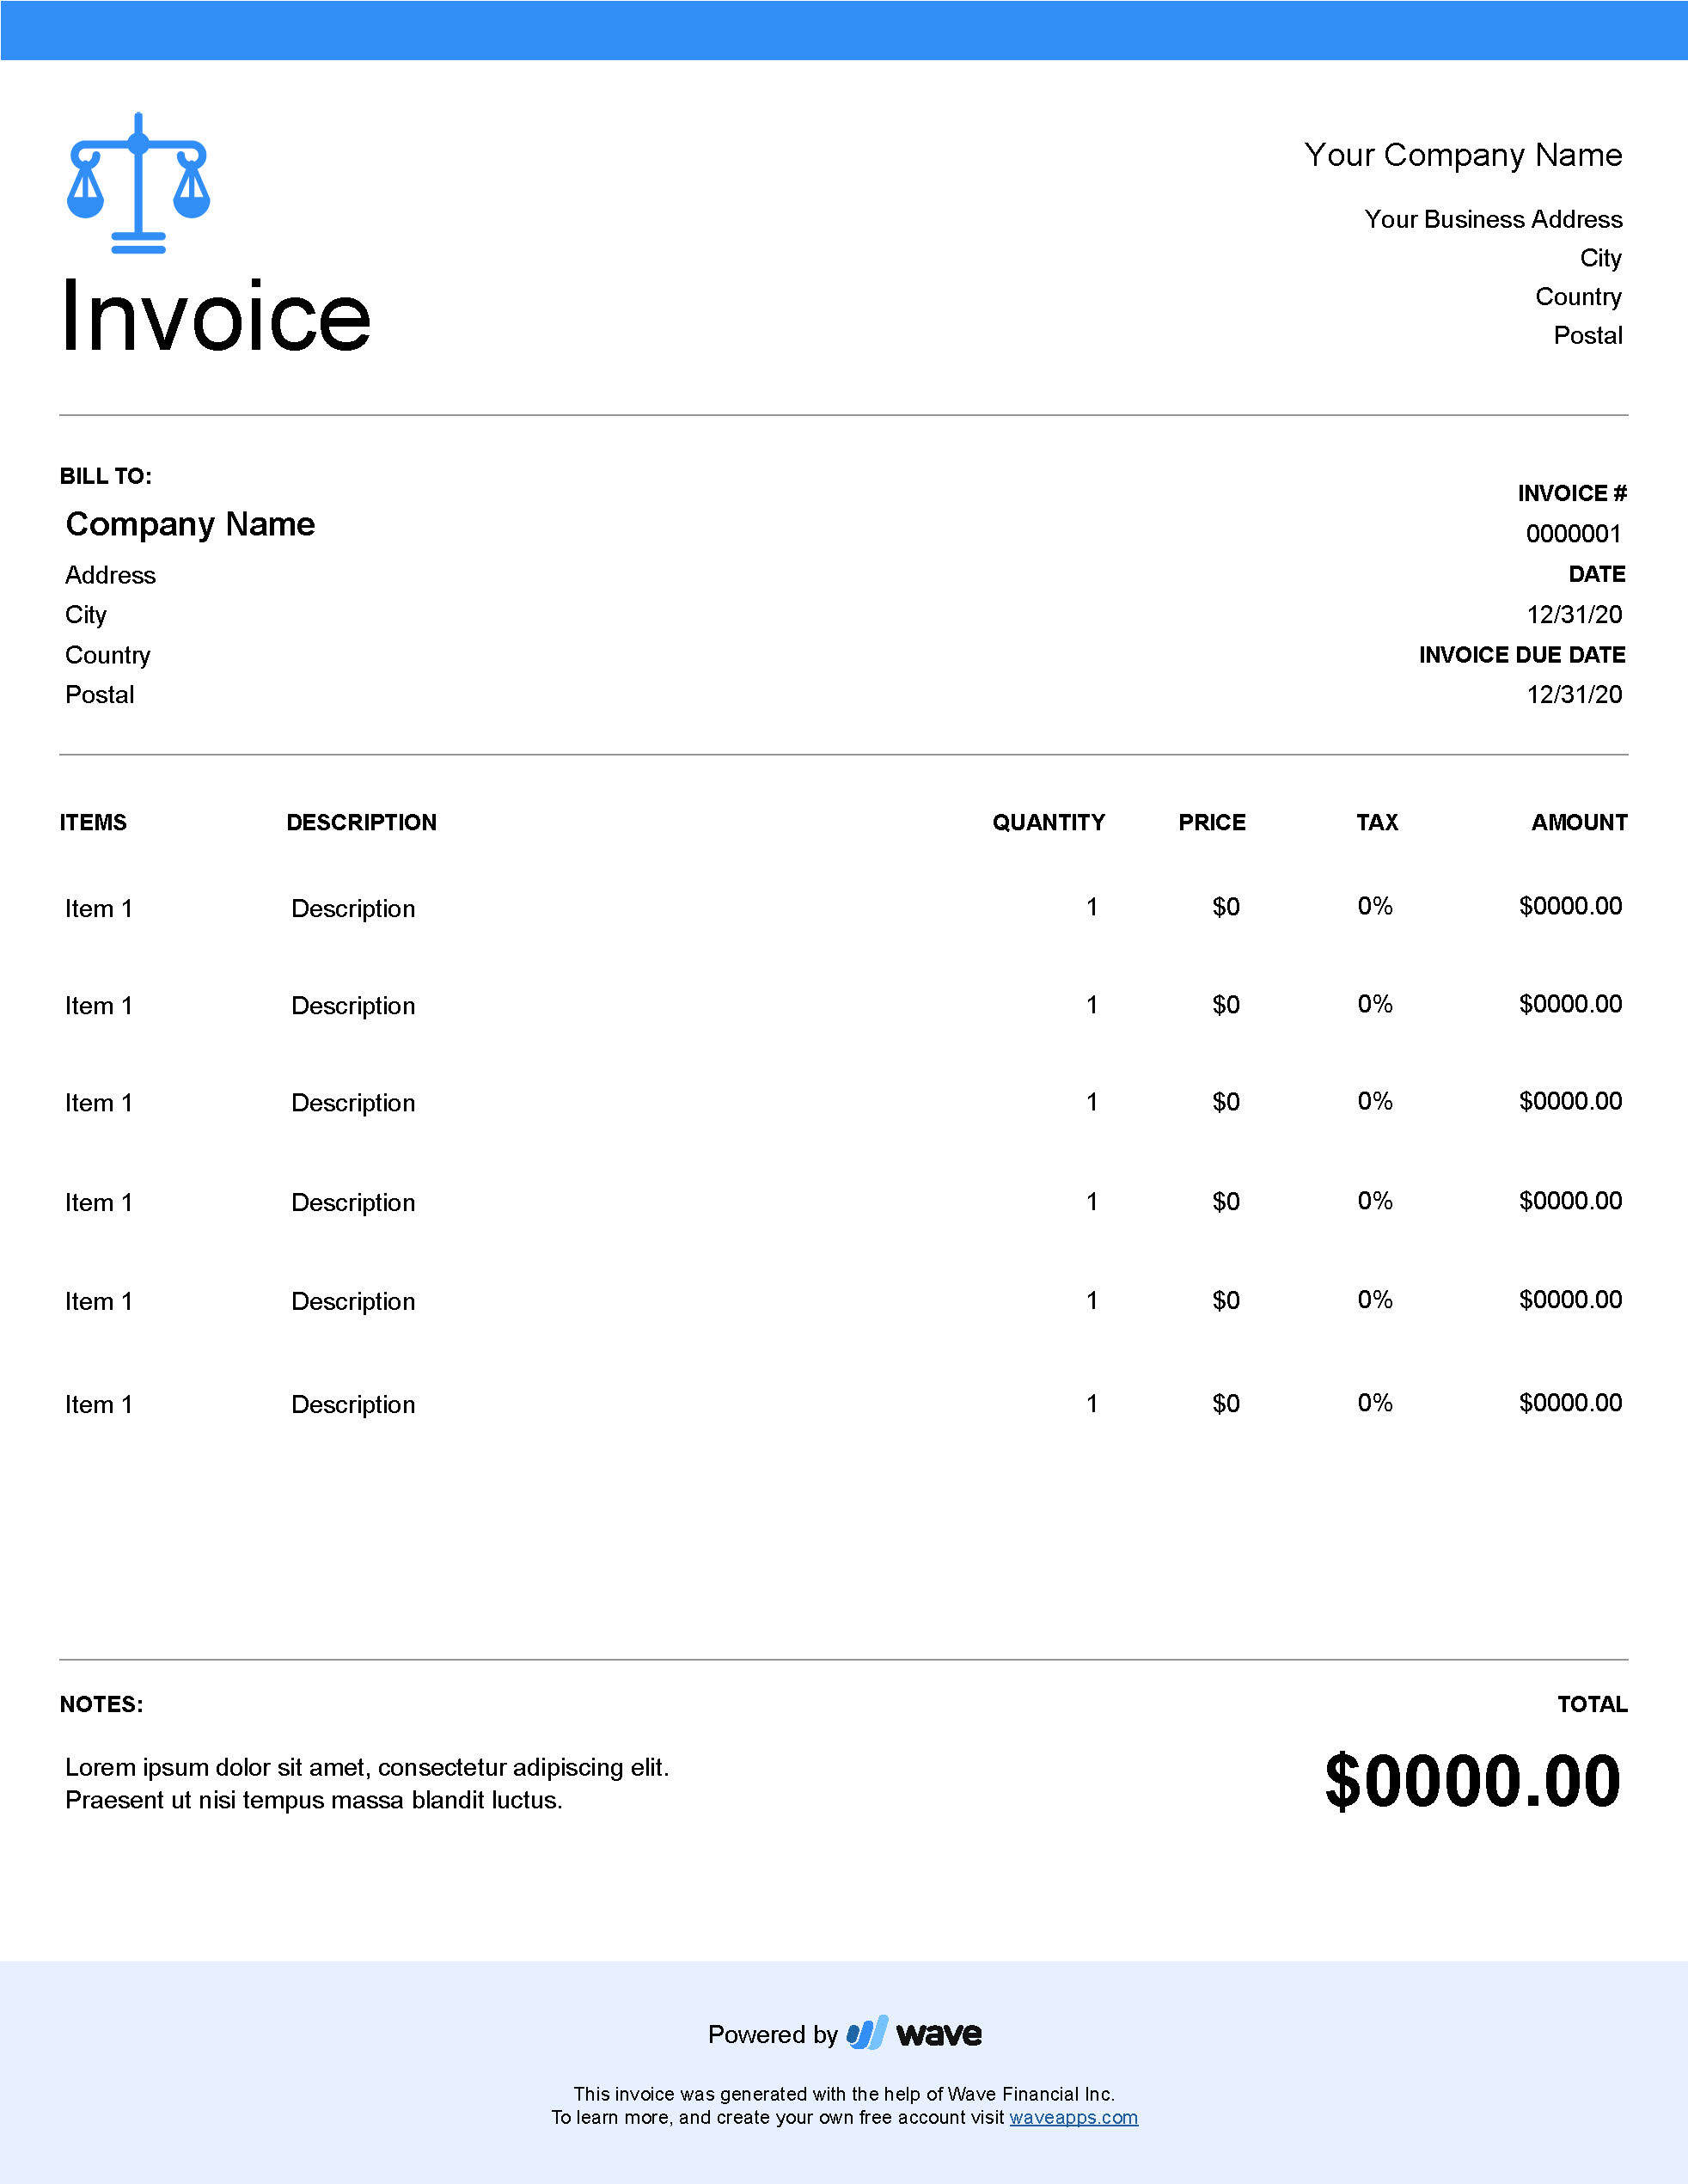 Attorney invoice template - Wave Invoicing